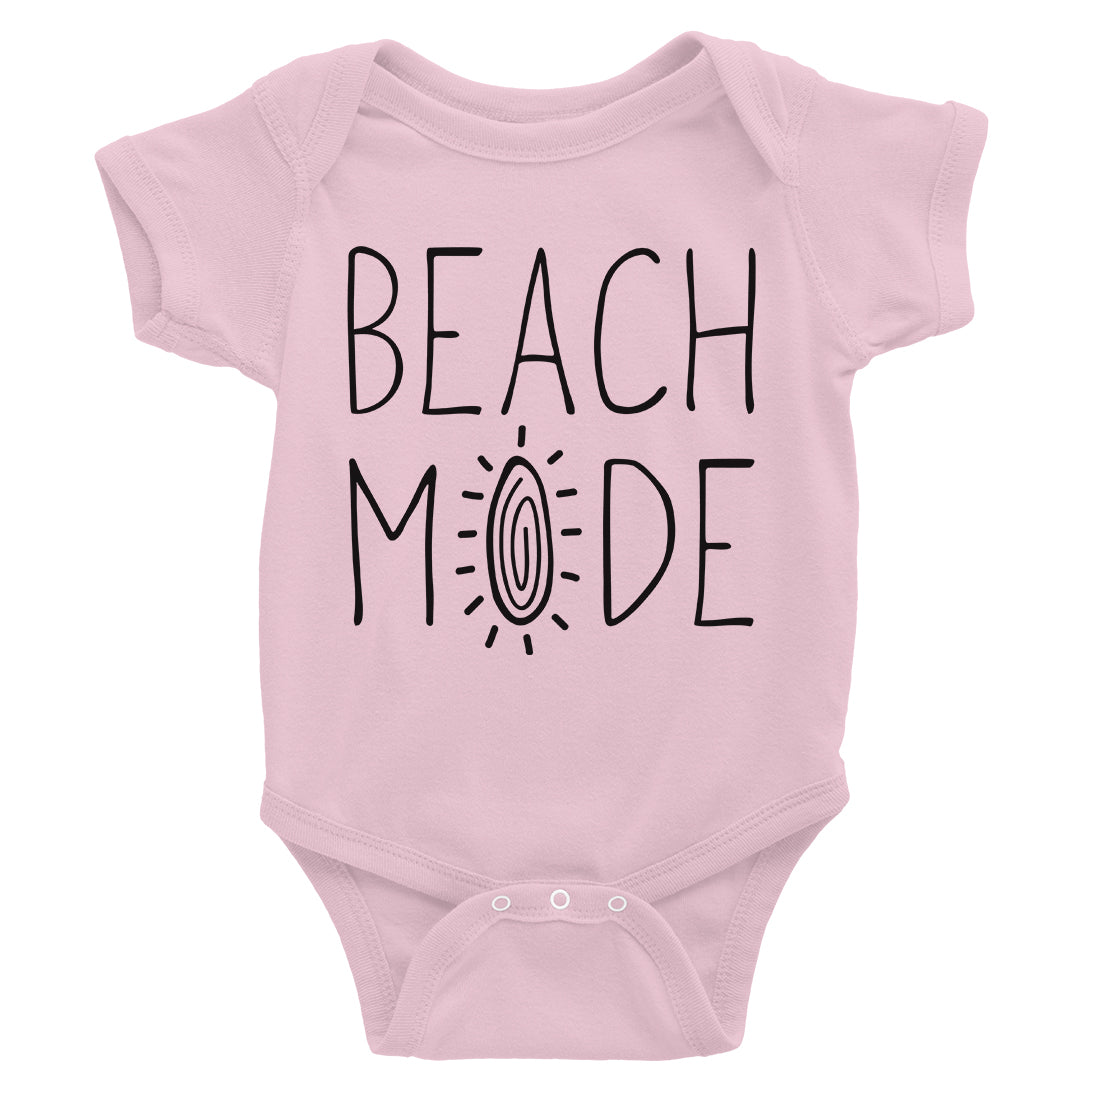 90e78f48 365 Printing Beach Mode Baby Bodysuit Gift For Baby Shower Cute Infant  Jumpsuit